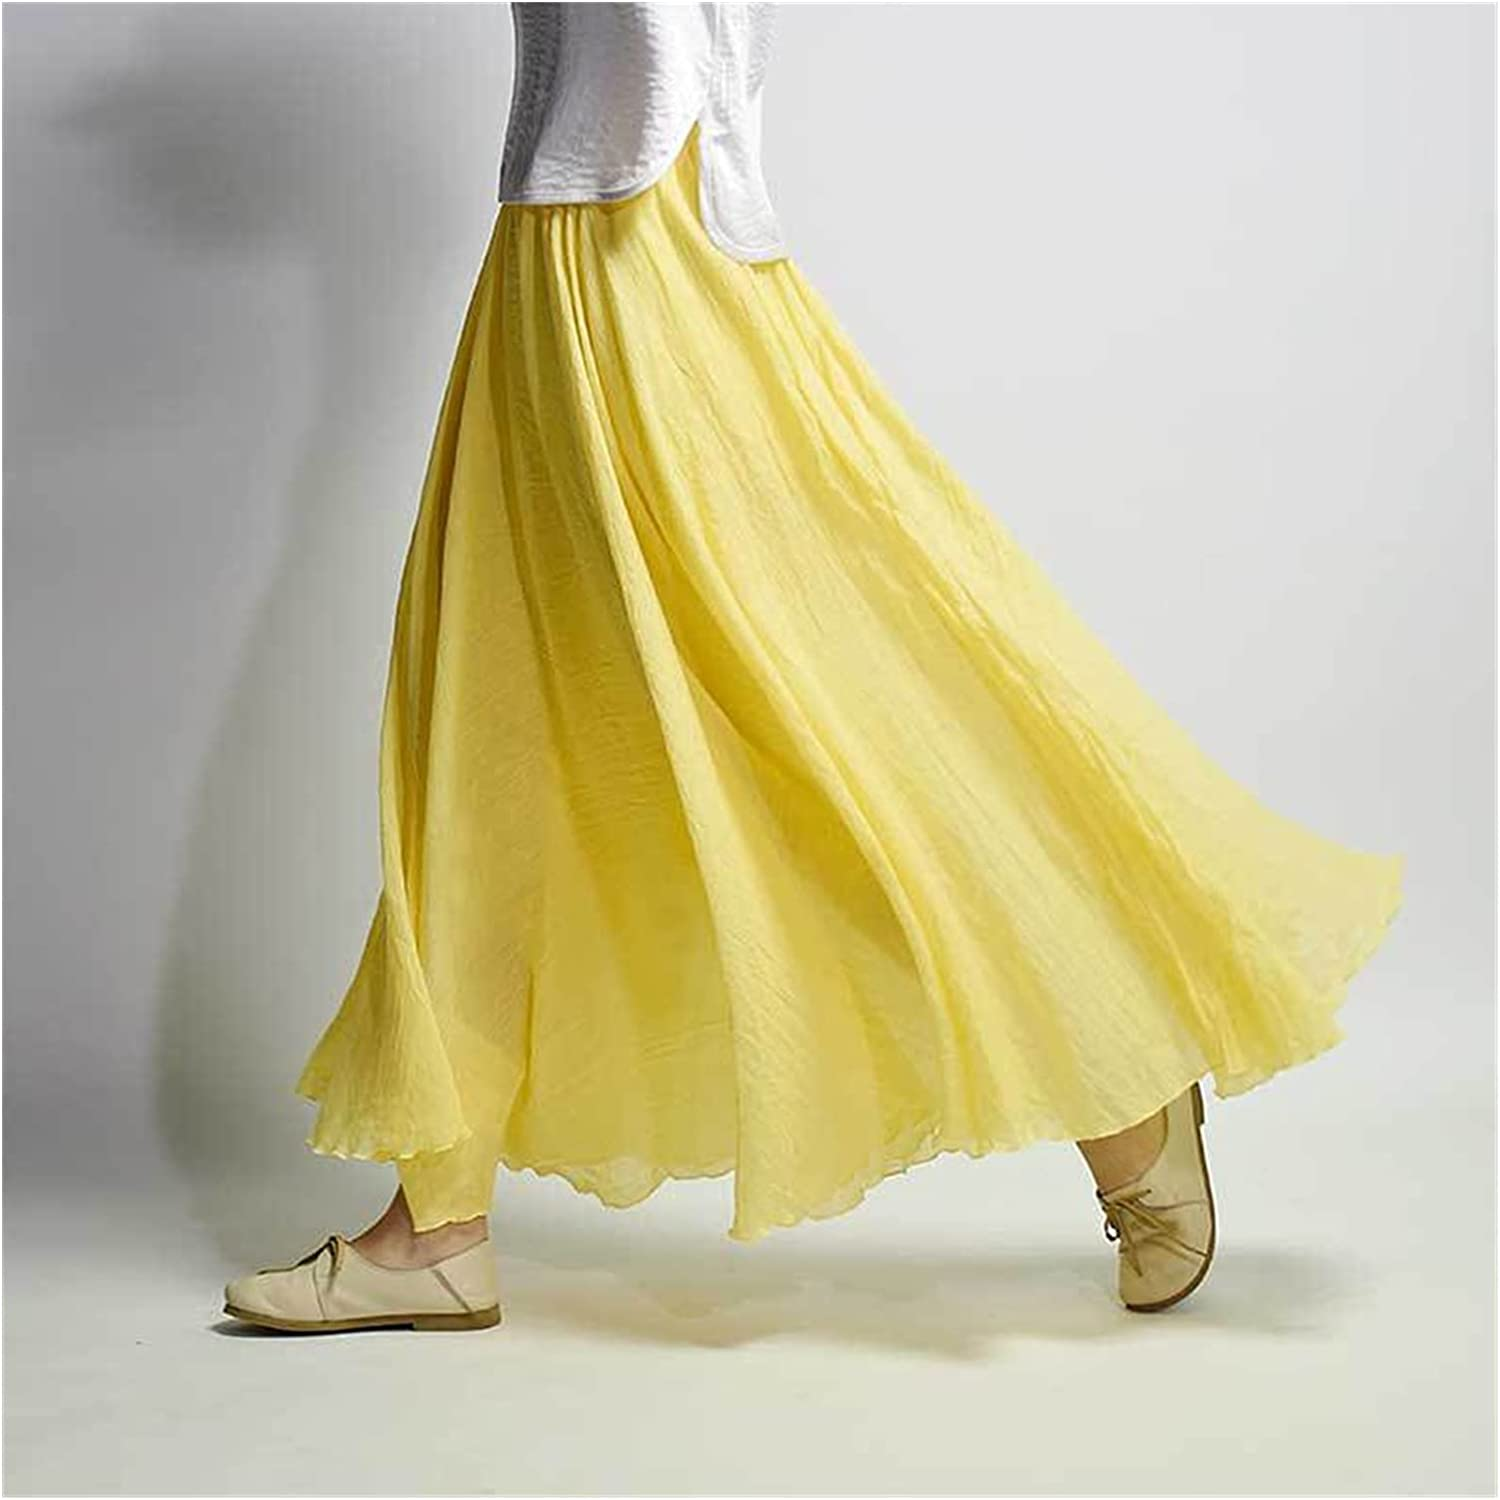 Uongfi Wedding Dresses for Bride Linen Cotton Cheap mail order specialty Safety and trust store Women Long Skirts